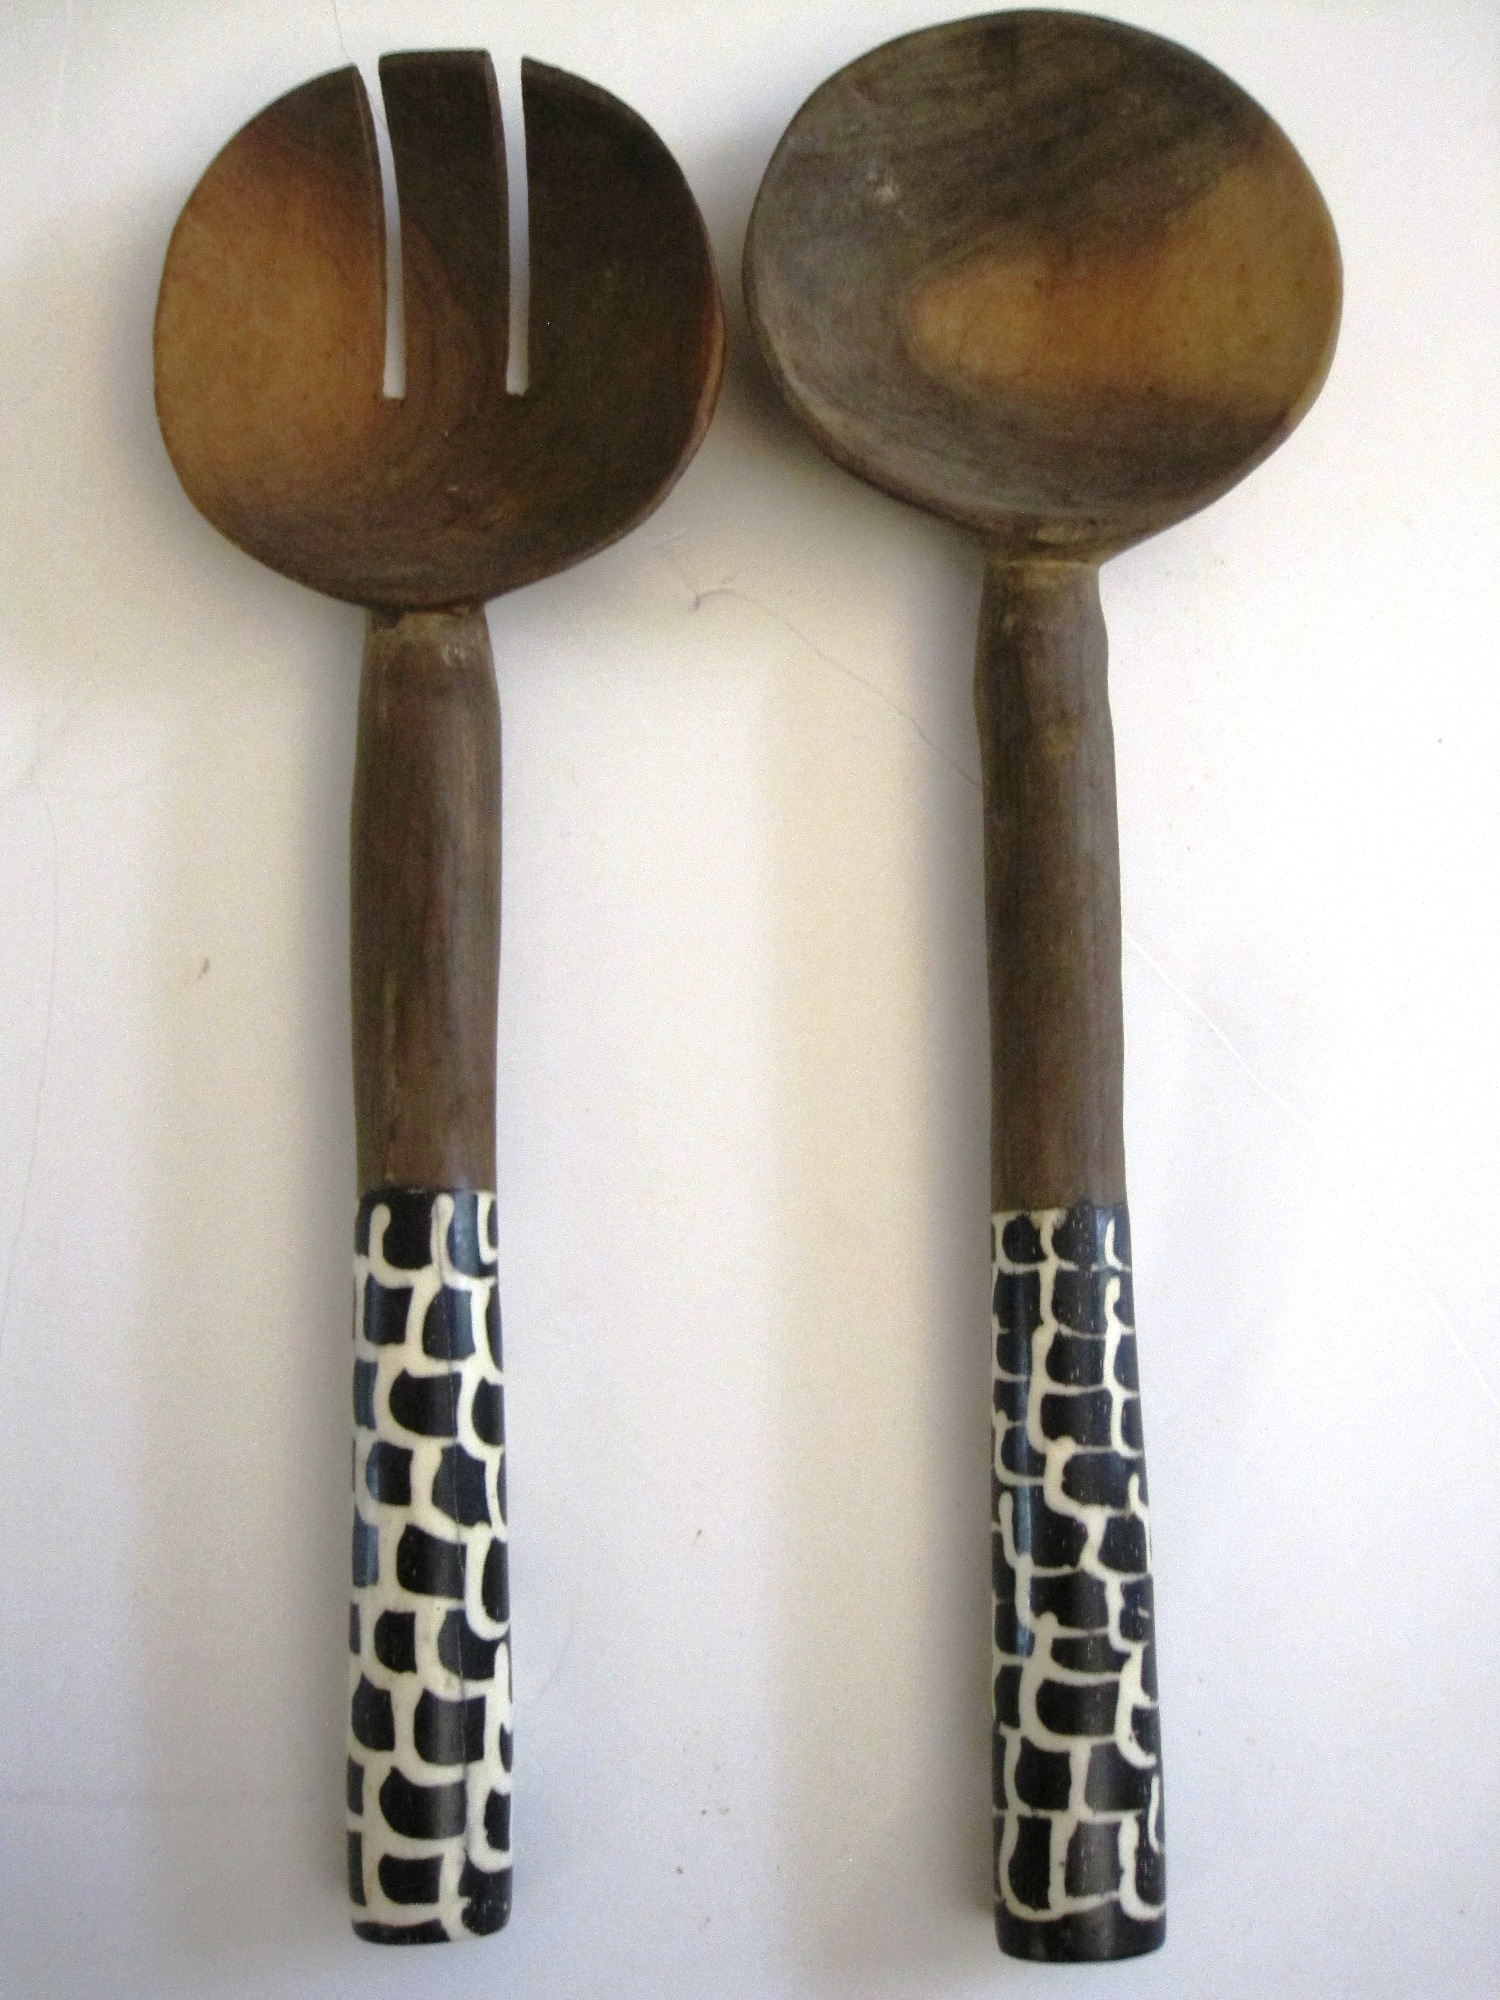 Bone/Wood Salad Server Server Set #003